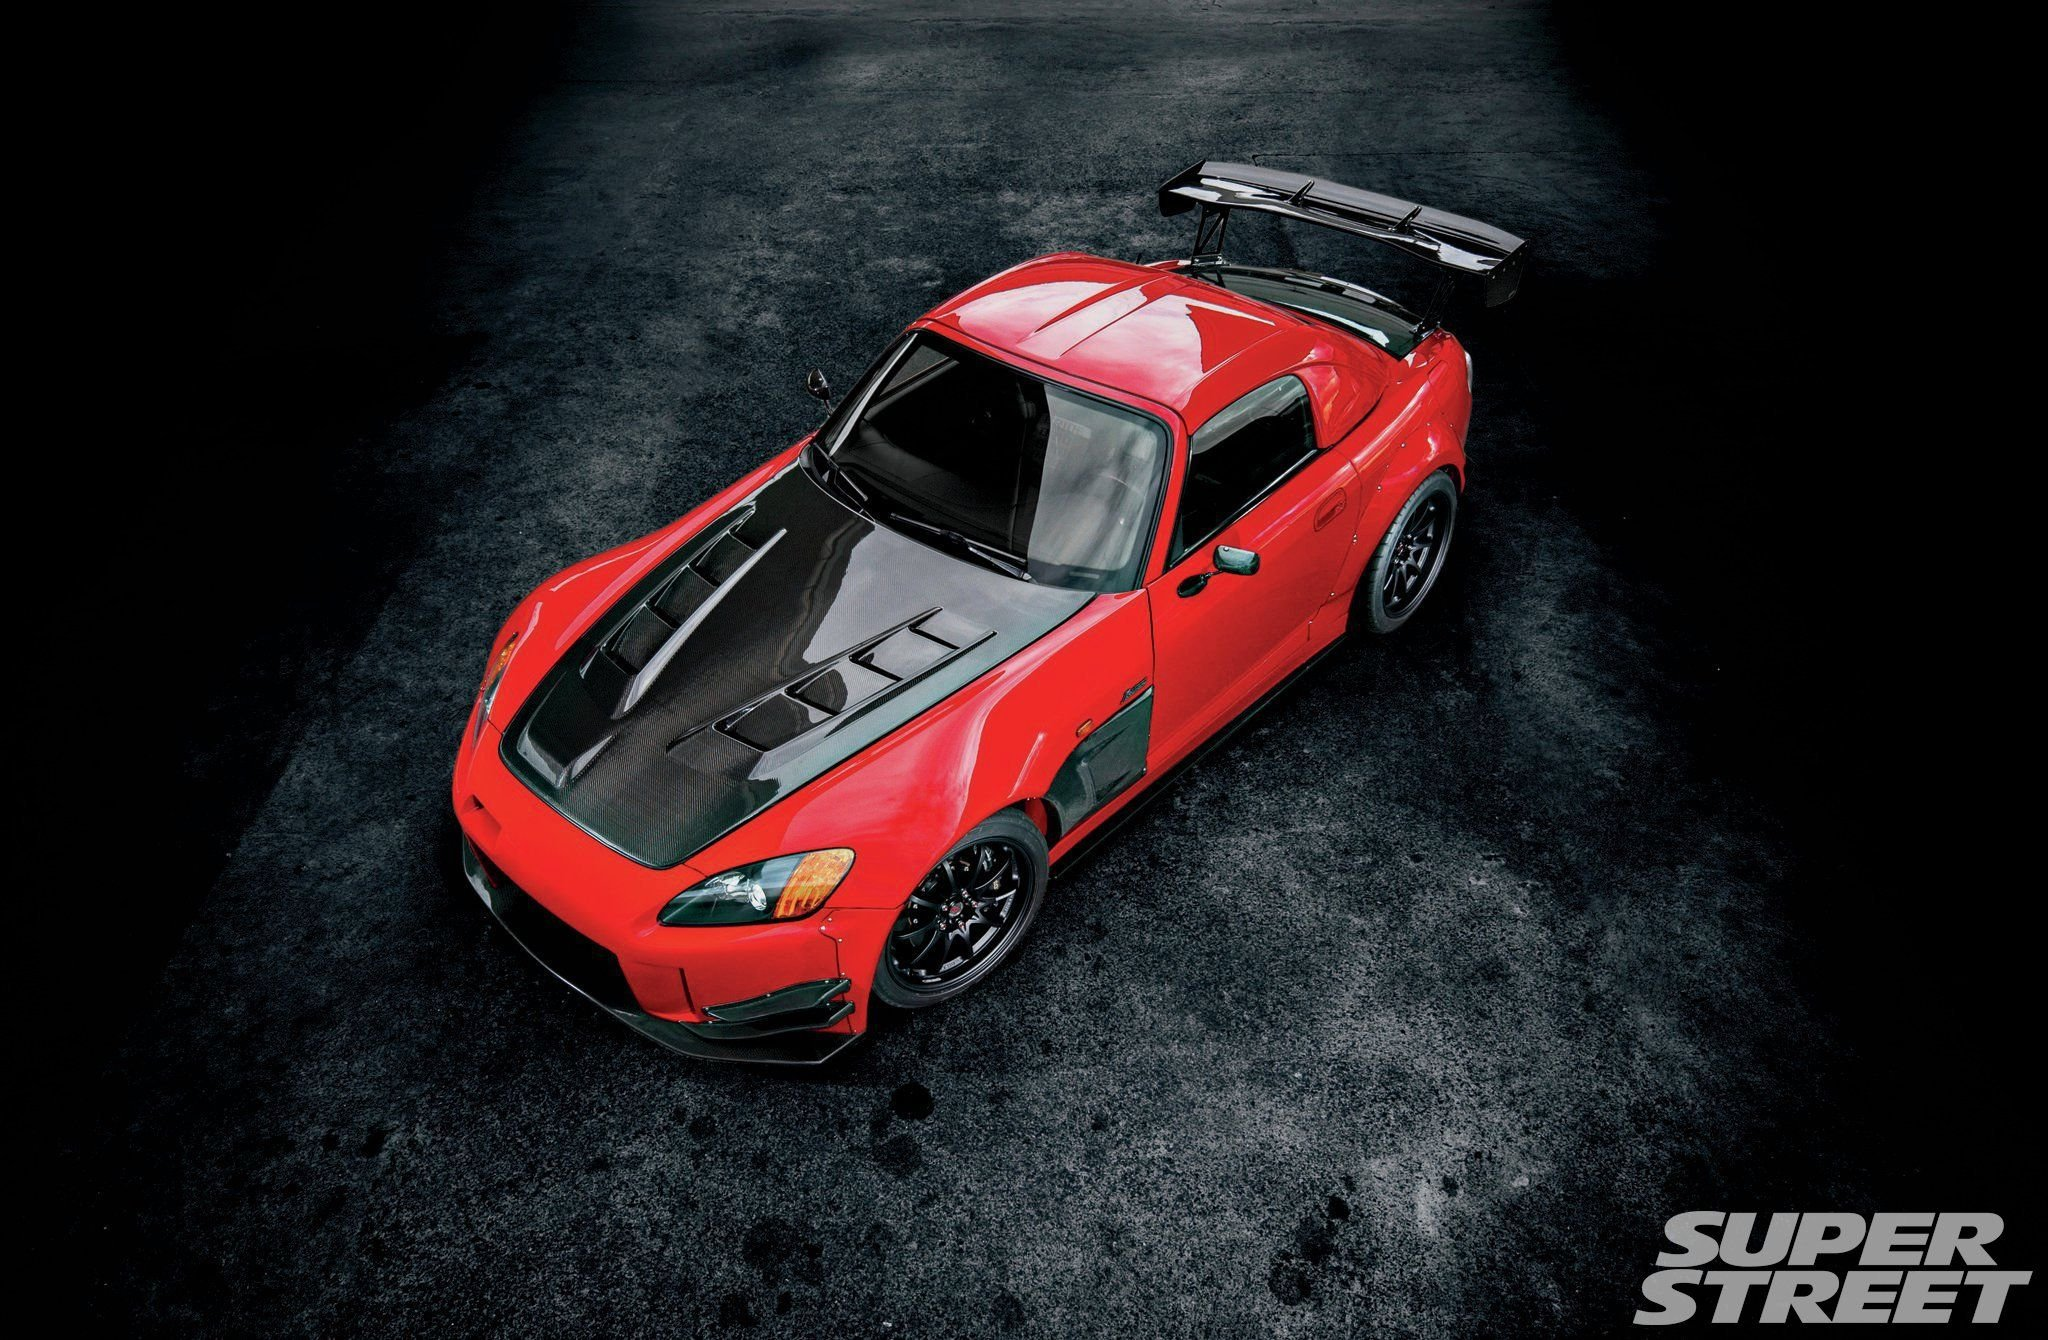 pictures of rc cars with 2000 Honda S2000 Convertible Cars Tuning on 1 18 Vw Scirocco 1 Million Kwl Motorsport likewise B6 WilhelmSkjoldebrand Odense2017010608 also Bil moreover Tanks as well 1965 Ford Mustang Shelby GT 350 Race Car Classic Old USA  01.